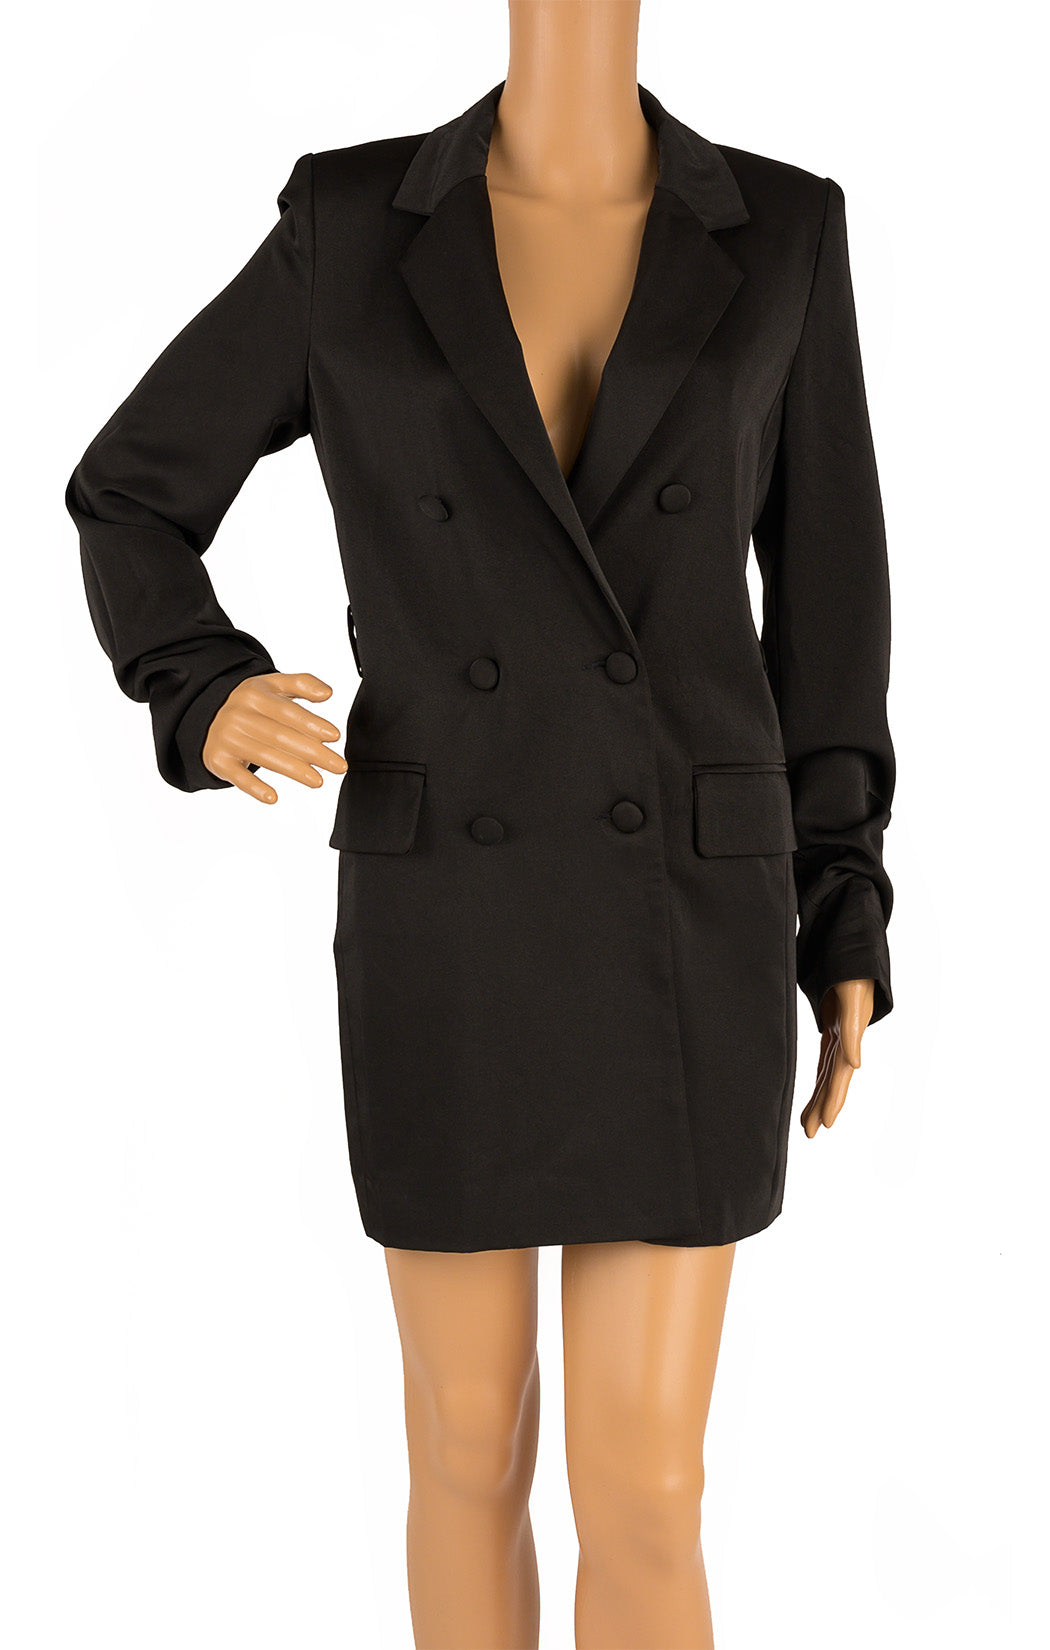 Front view of NAKED WARDROBE  Blazer dress Size: Small